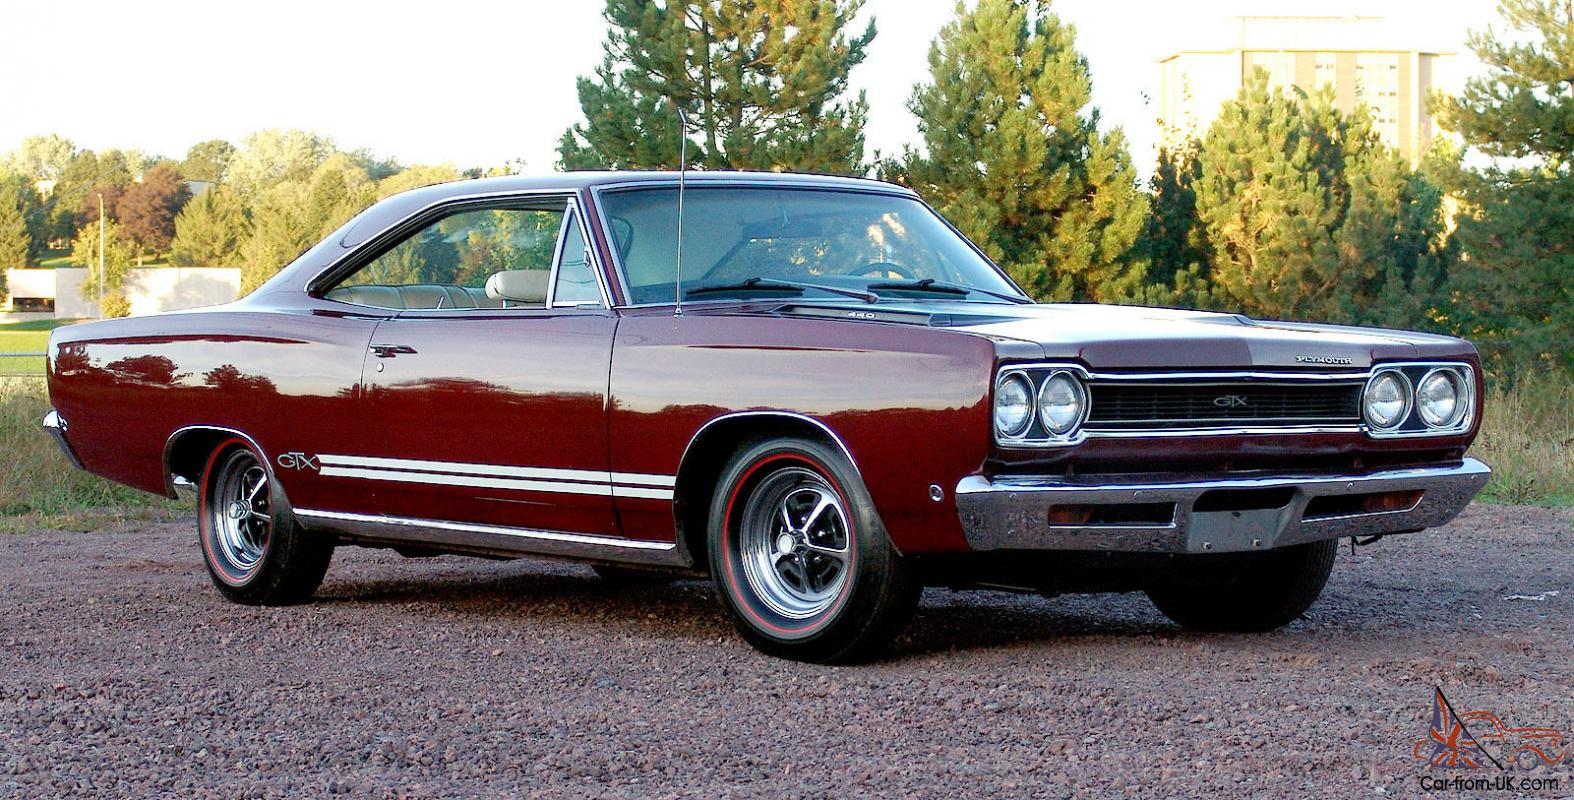 1968 Plymouth Gtx 440 Wiring Diagram Trusted Diagrams 4 Spd Dana 60 Numbers Matching Wicked Custom